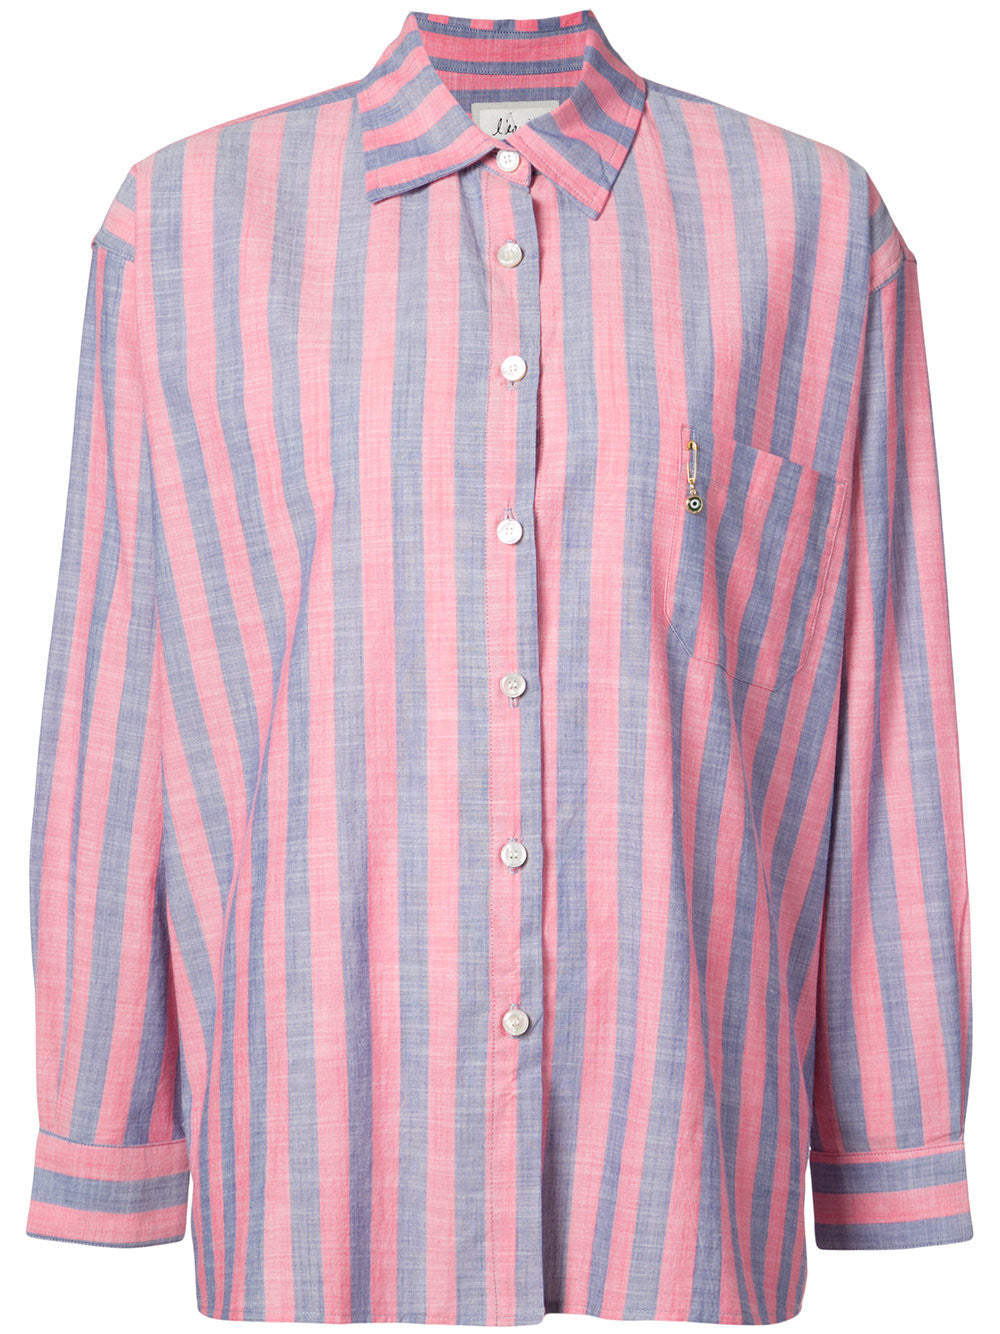 PINK & BLUE STRIPE JOHNNY